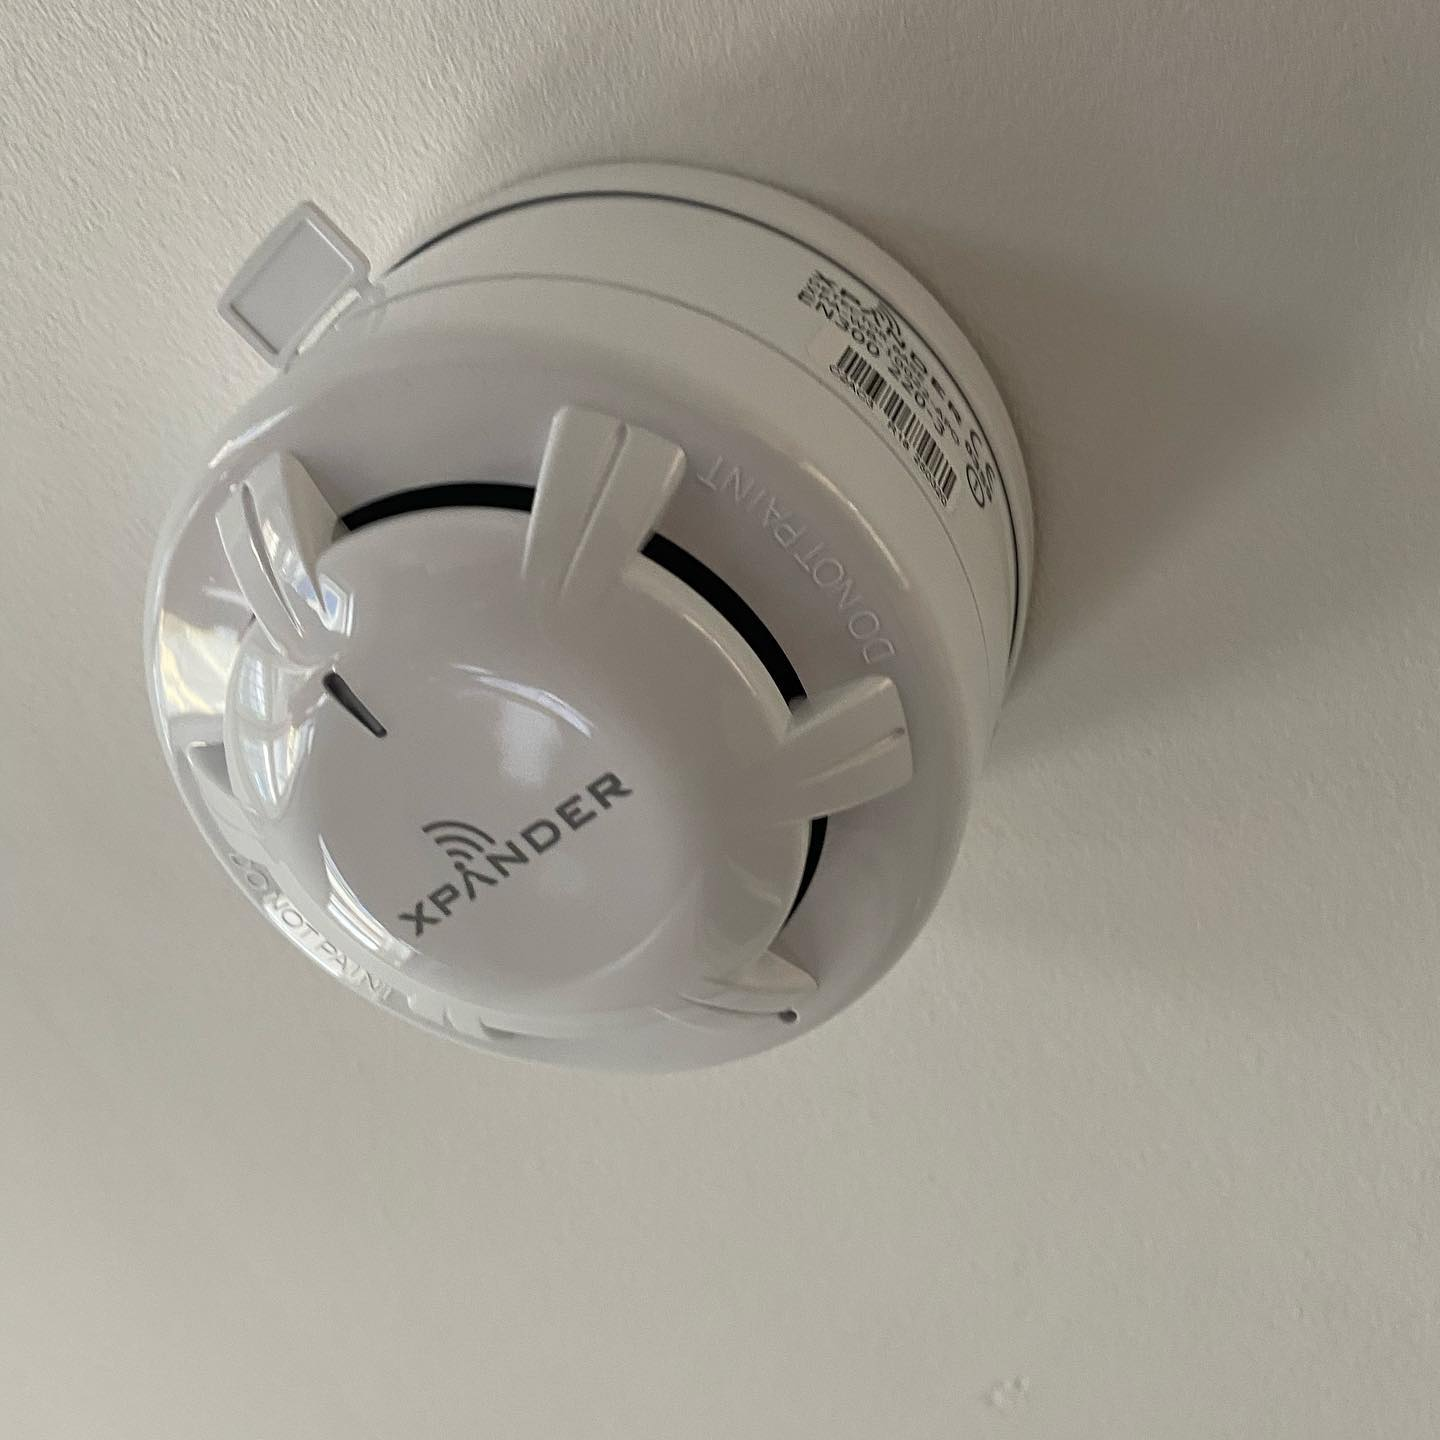 Hybrid Fire Alarm Systems Chester